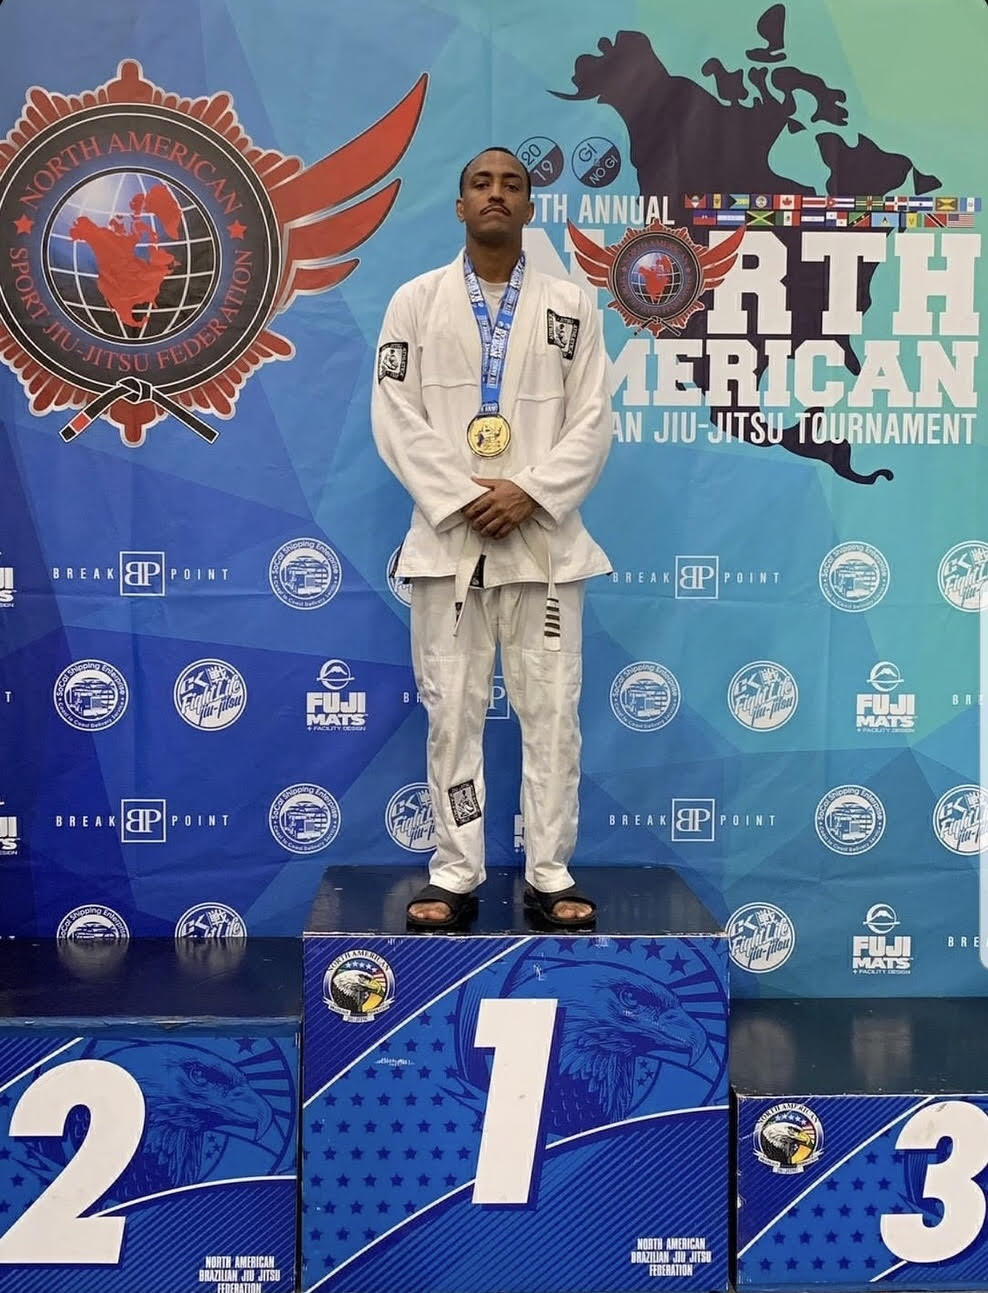 Sterling Ingram goes 4-0 with 4 submissons, taking 1st Place in his division at the 15th Annual NABJJF Tournament.